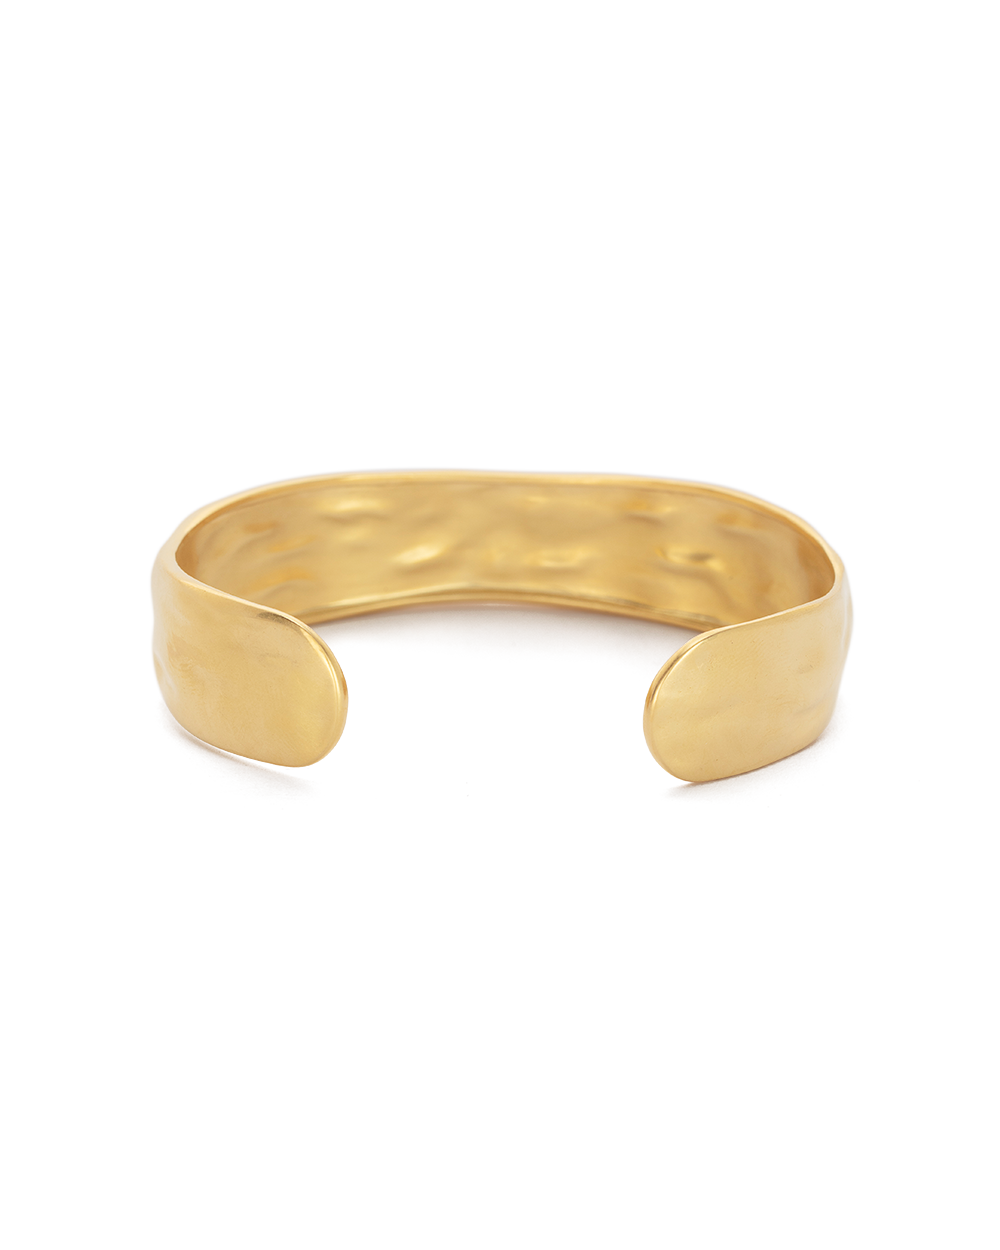 ELEMENTS CUFF MEDIUM (18K-GOLD-PLATED) -BACK